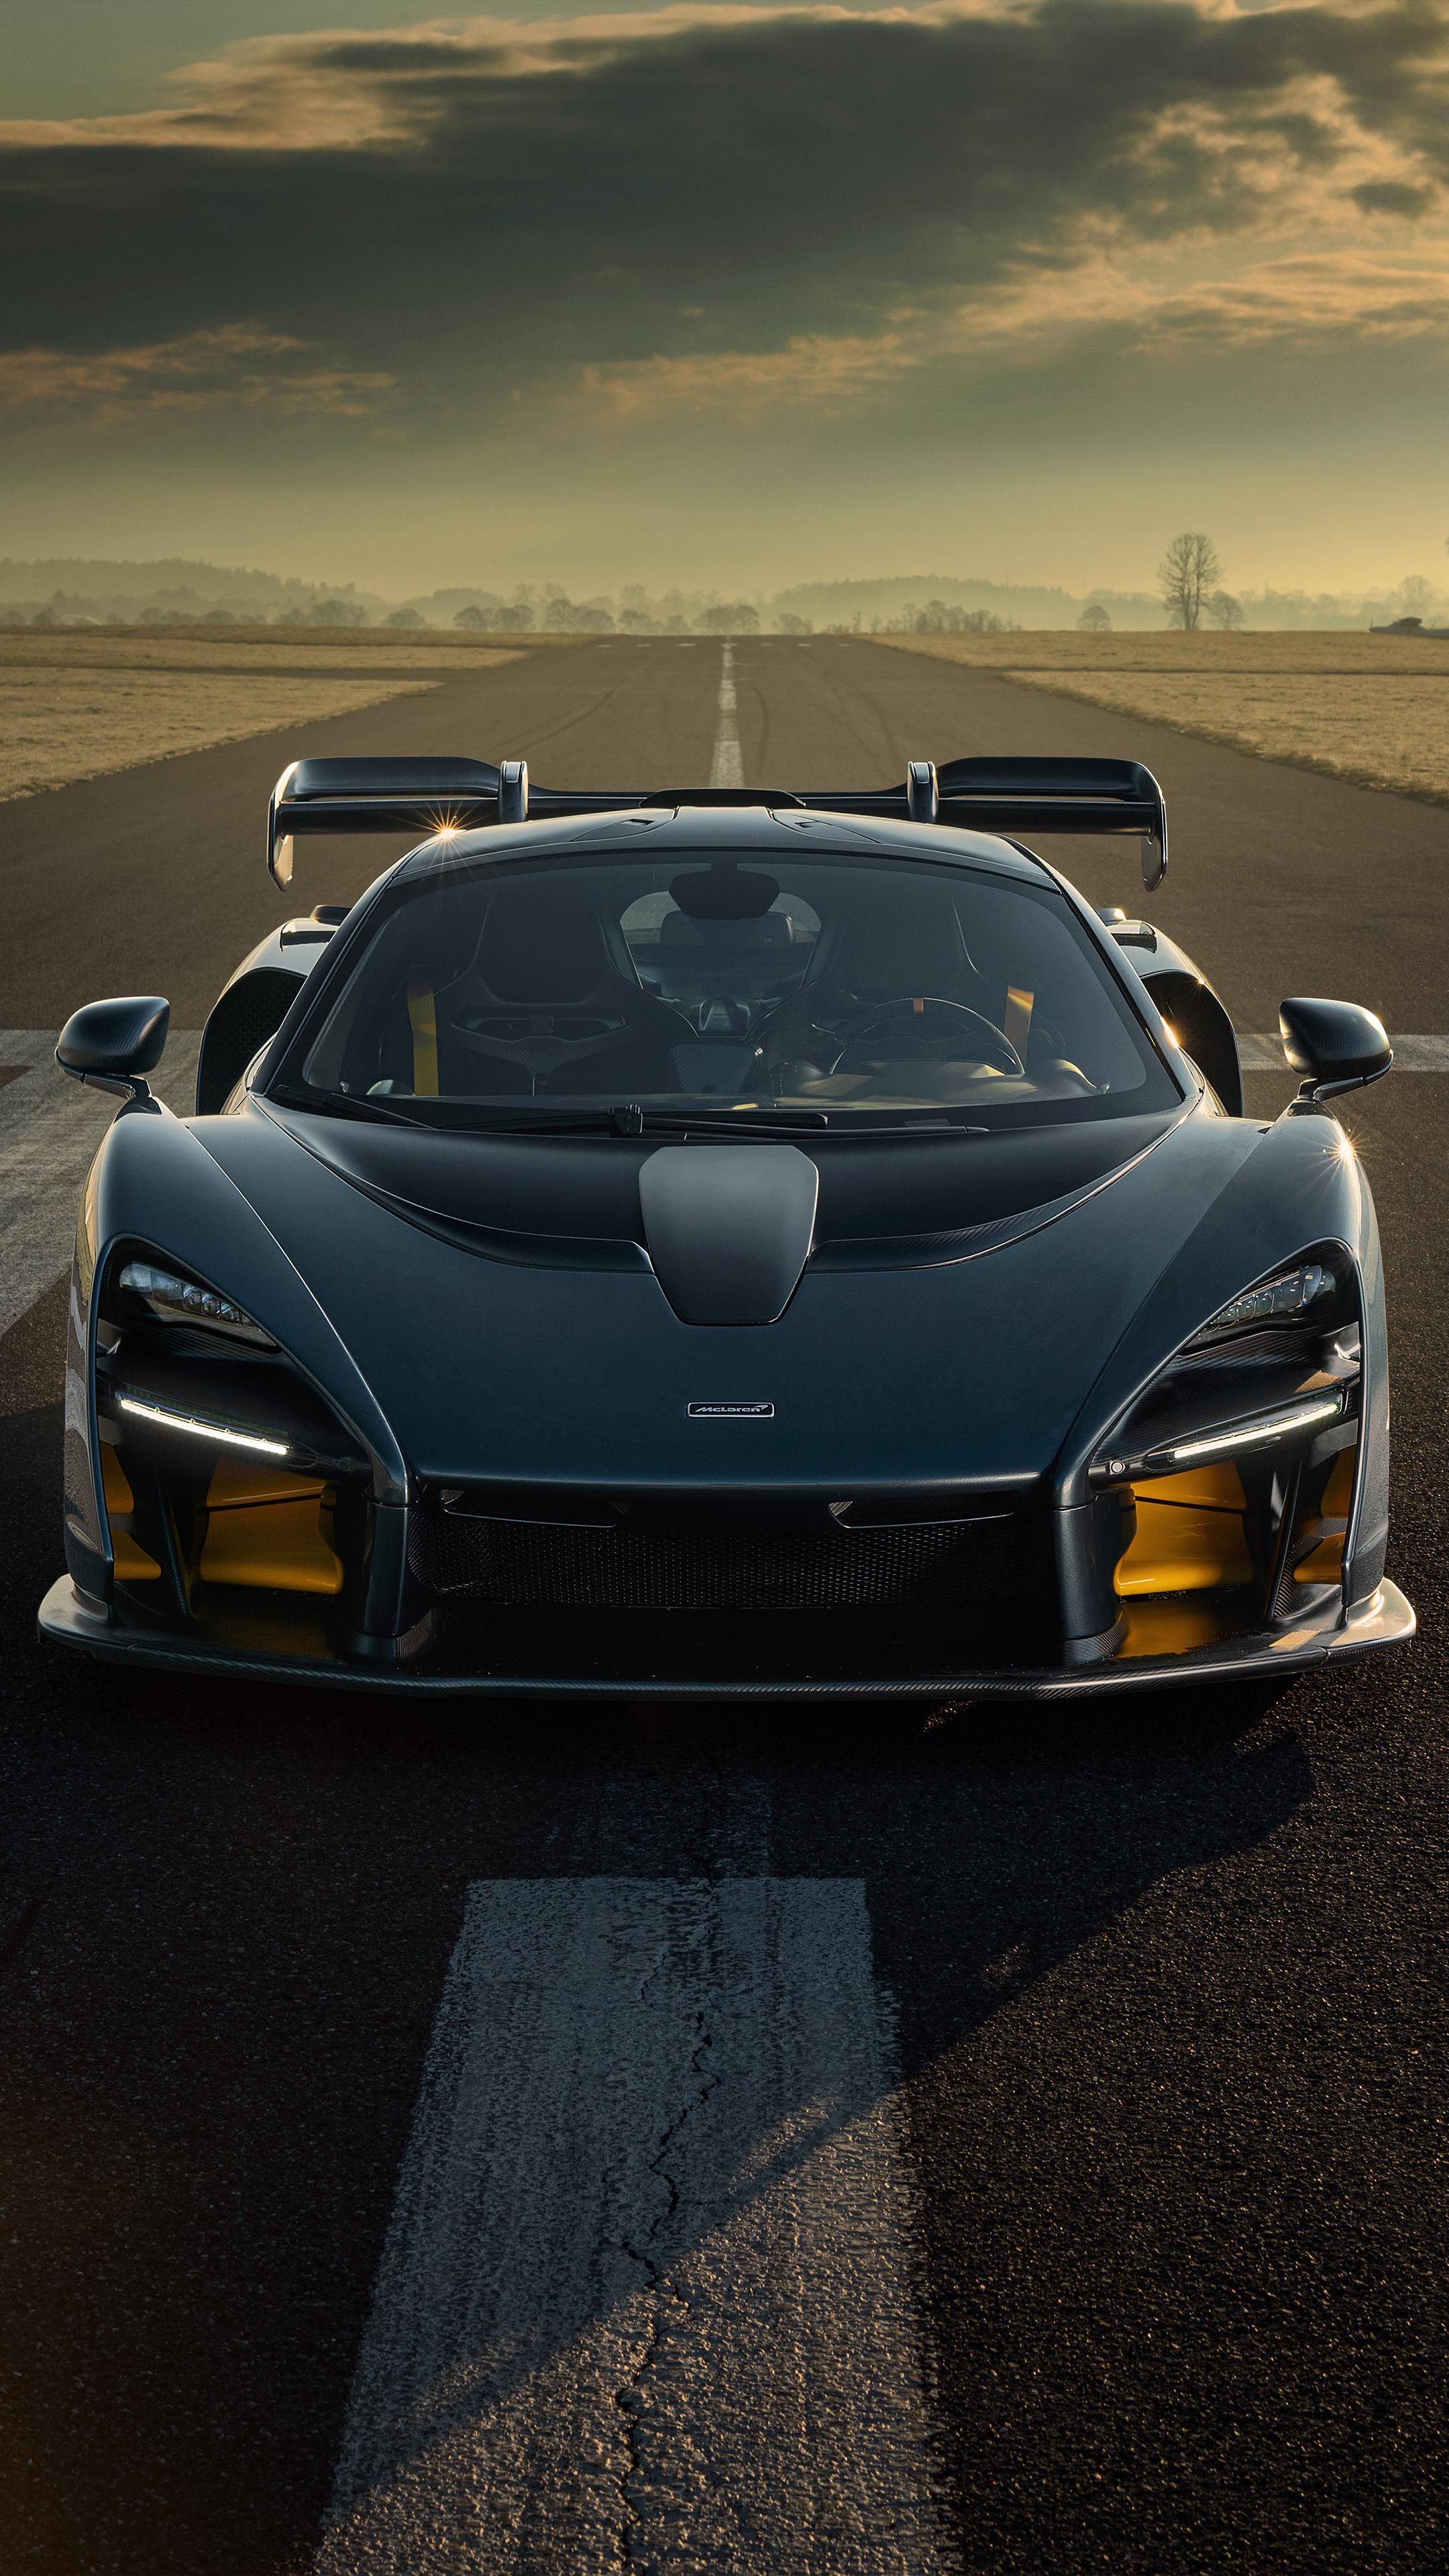 Novitec Mclaren Senna 2020 4k Ultra Hd Mobile Wallpaper Car Wallpapers Super Luxury Cars Sports Car Wallpaper